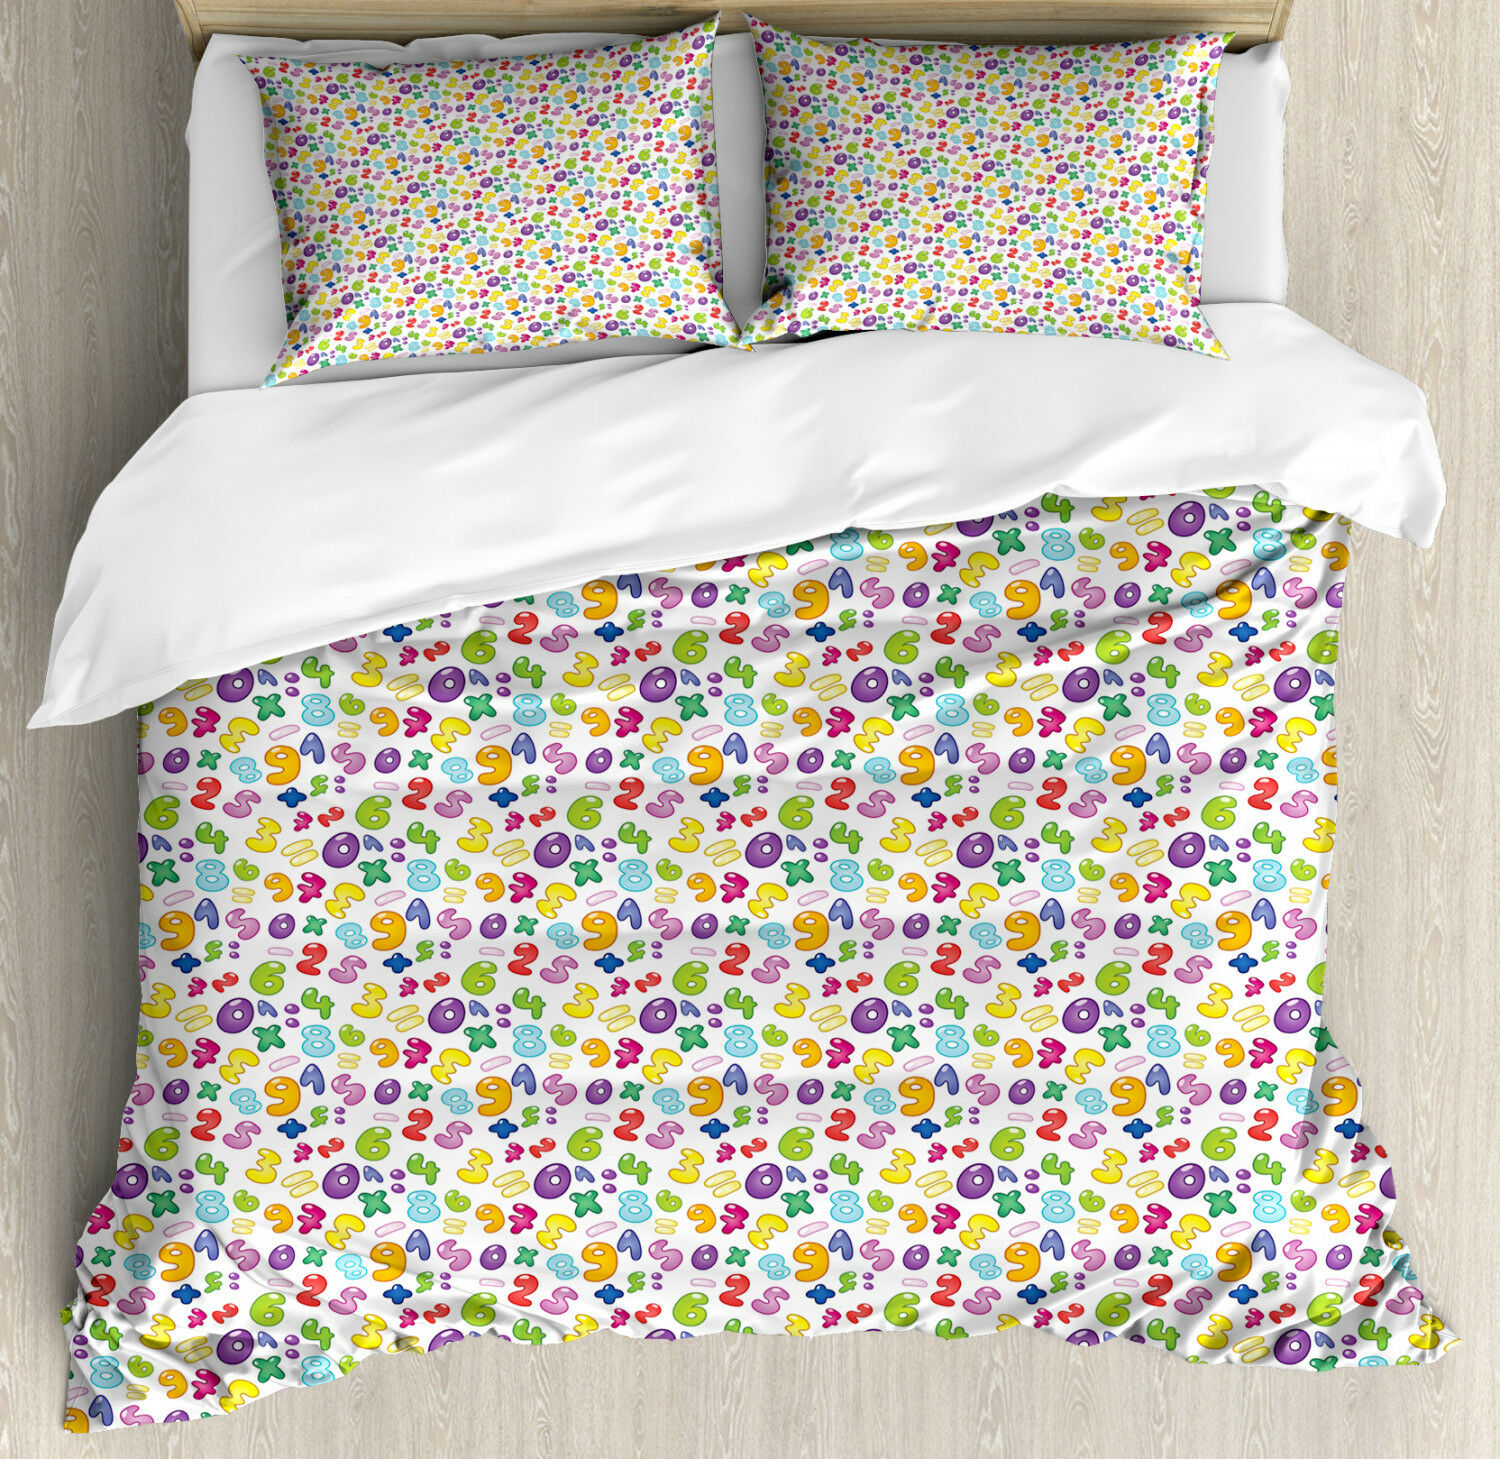 Numbers Duvet Cover Set with Pillow Shams colorful Bubble Style Print